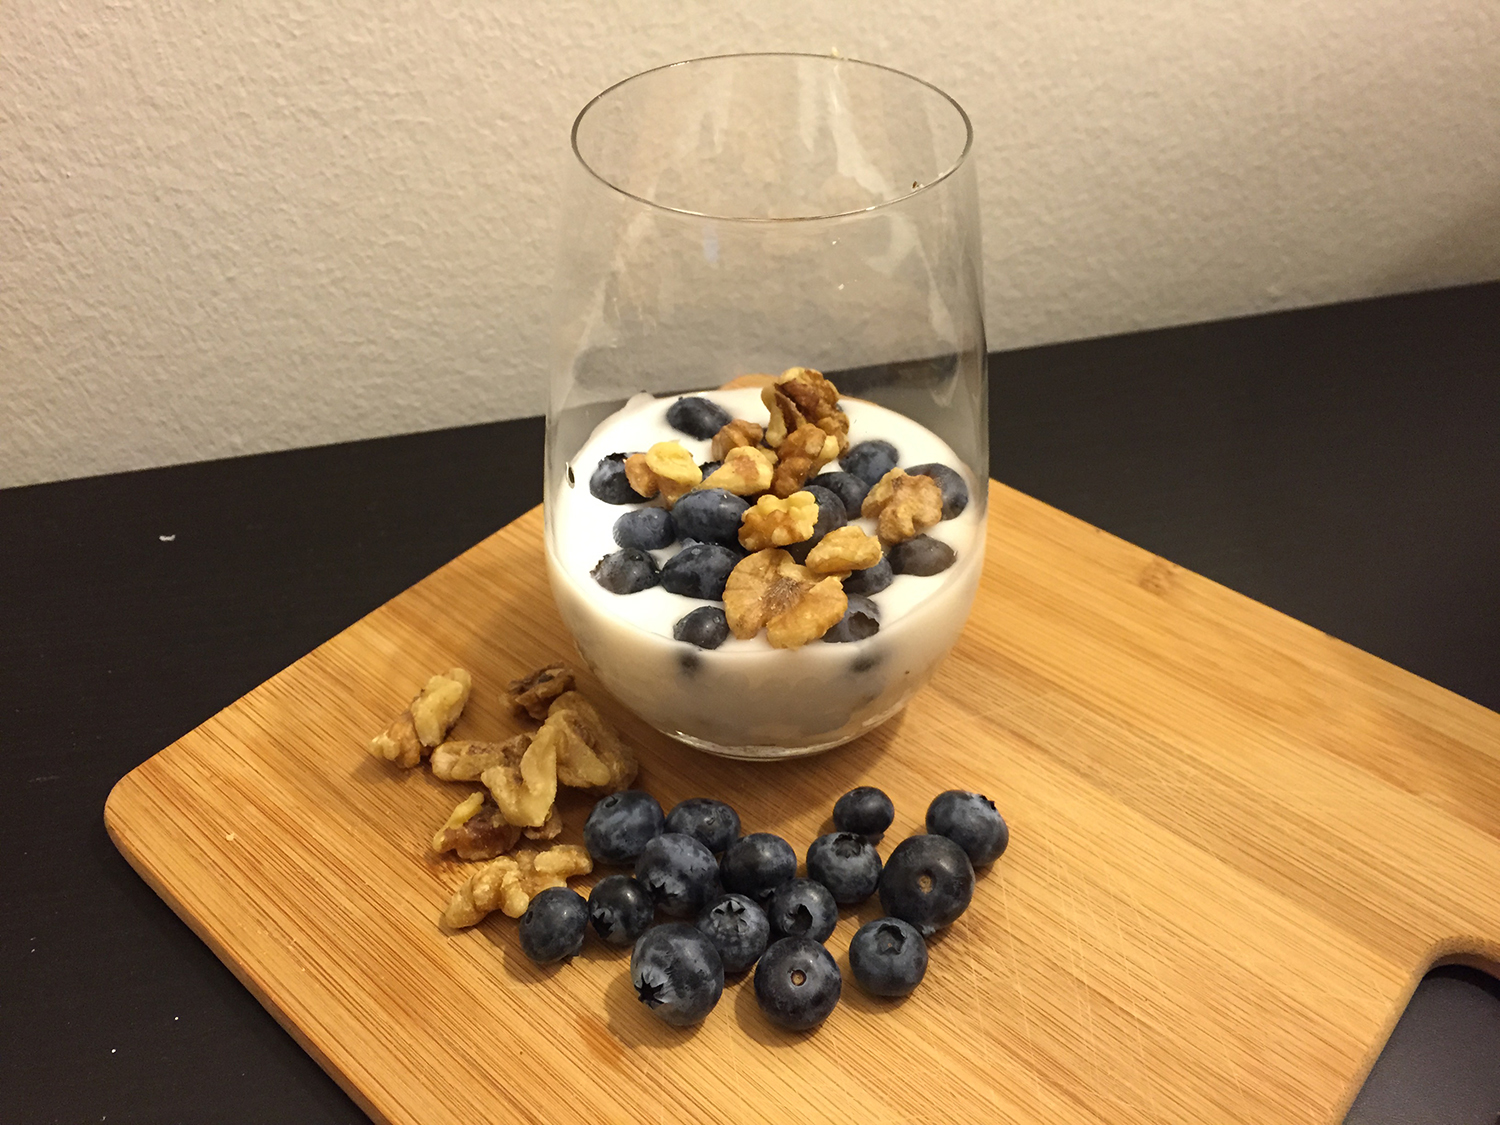 Dairy Free Coconut Yogurt Parfait